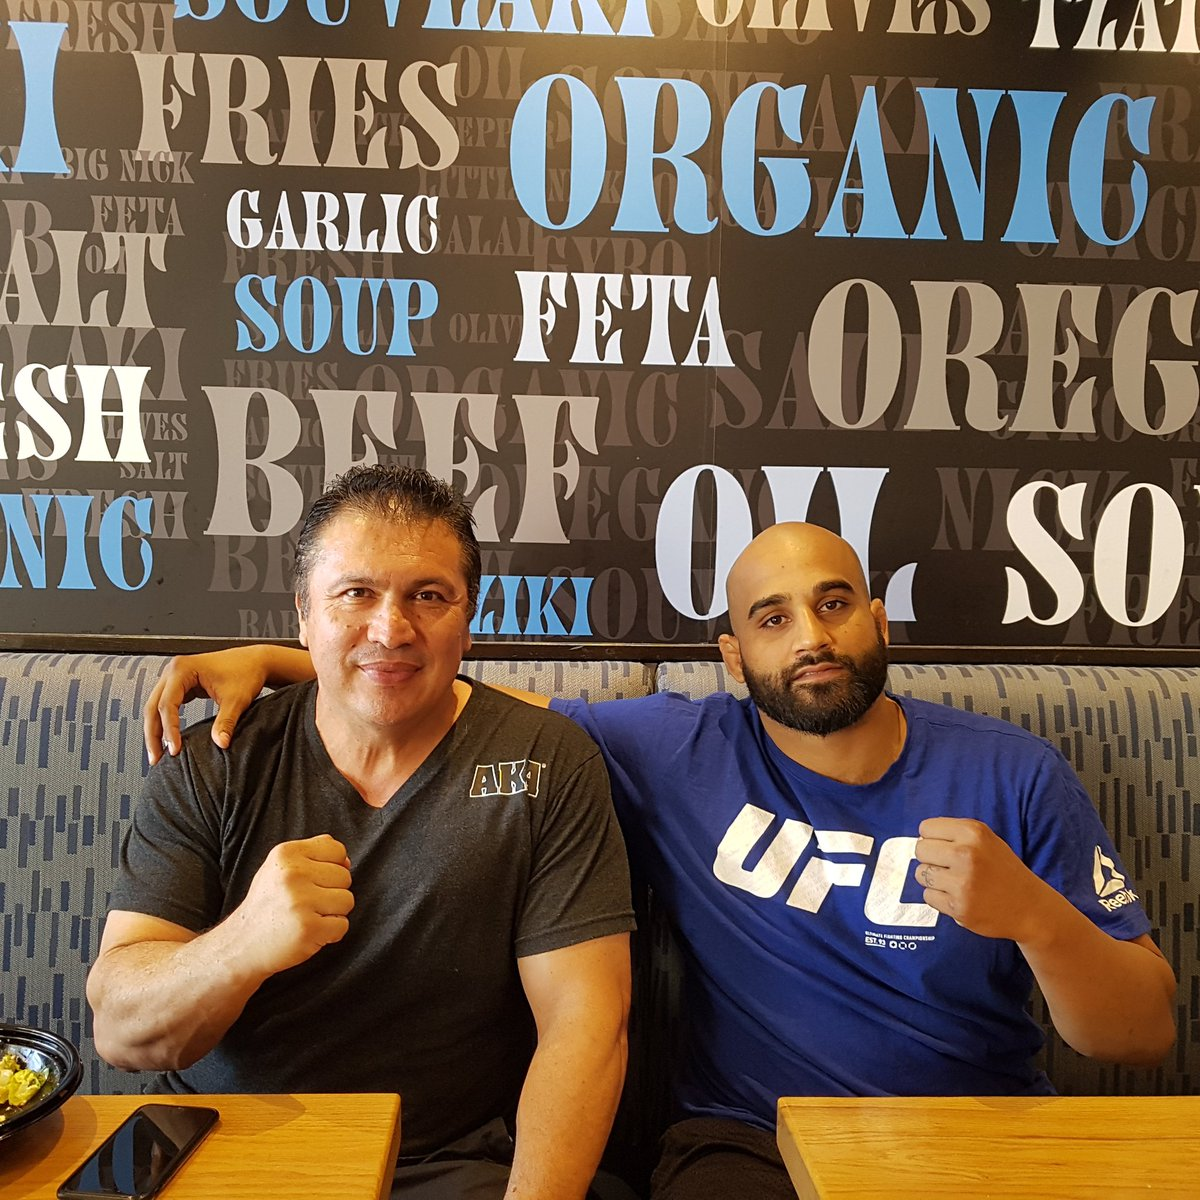 Had a great lunch with team AKA founder and head coach @akajav. This guy has welcomed me with open arms since the day I stepped into his gym and has built an army of champions over the years. We will continue to work together on the quest to the top @ufc #grateful #TeamBhullar